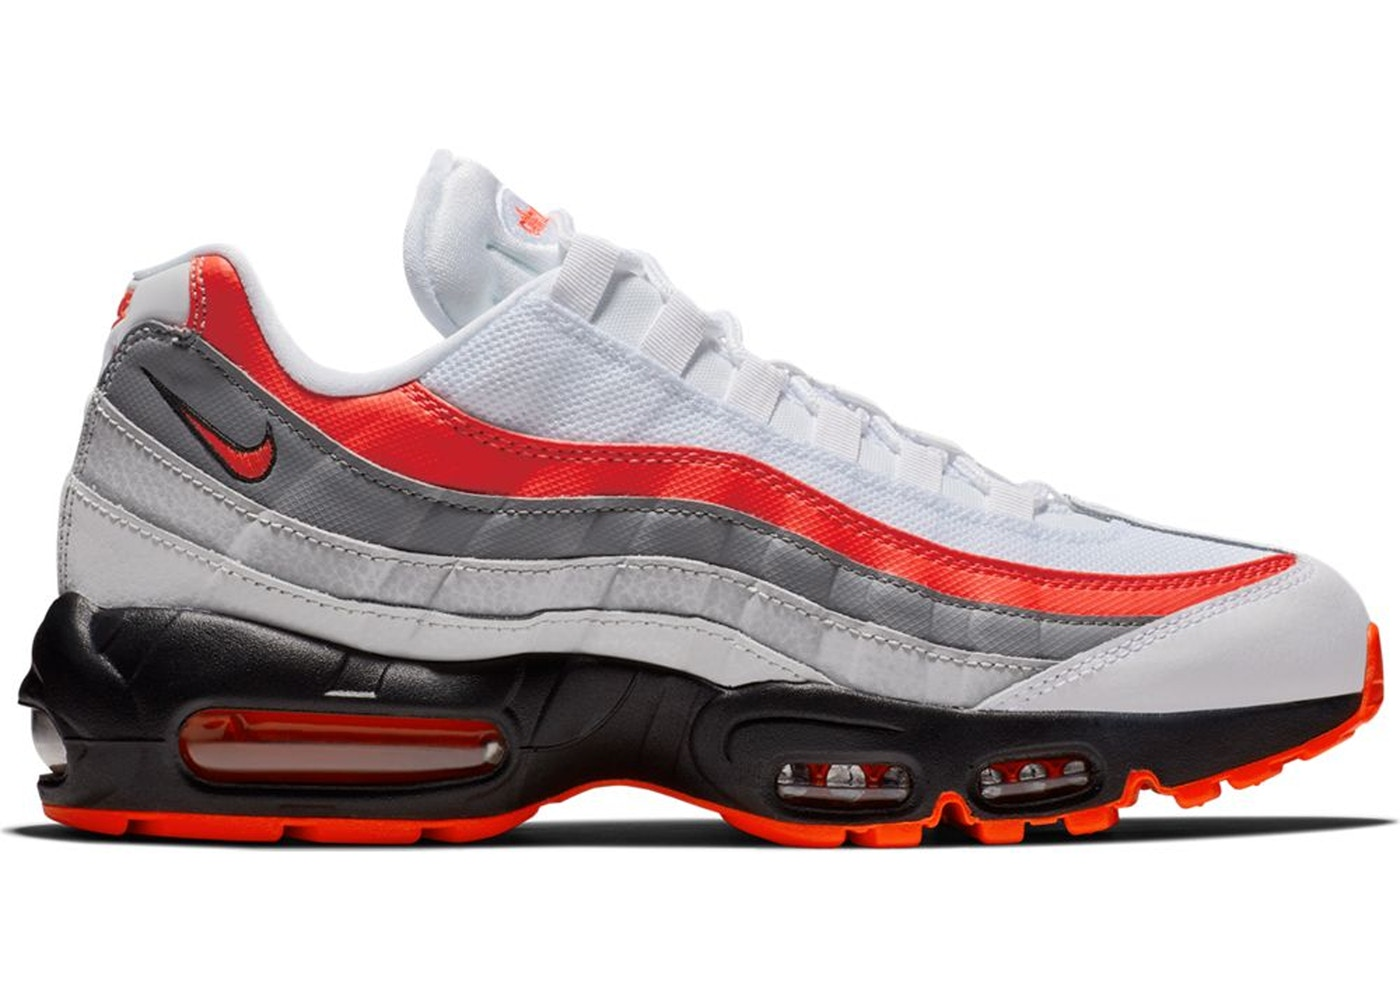 124c72127d67b Buy Nike Air Max 95 Shoes   Deadstock Sneakers